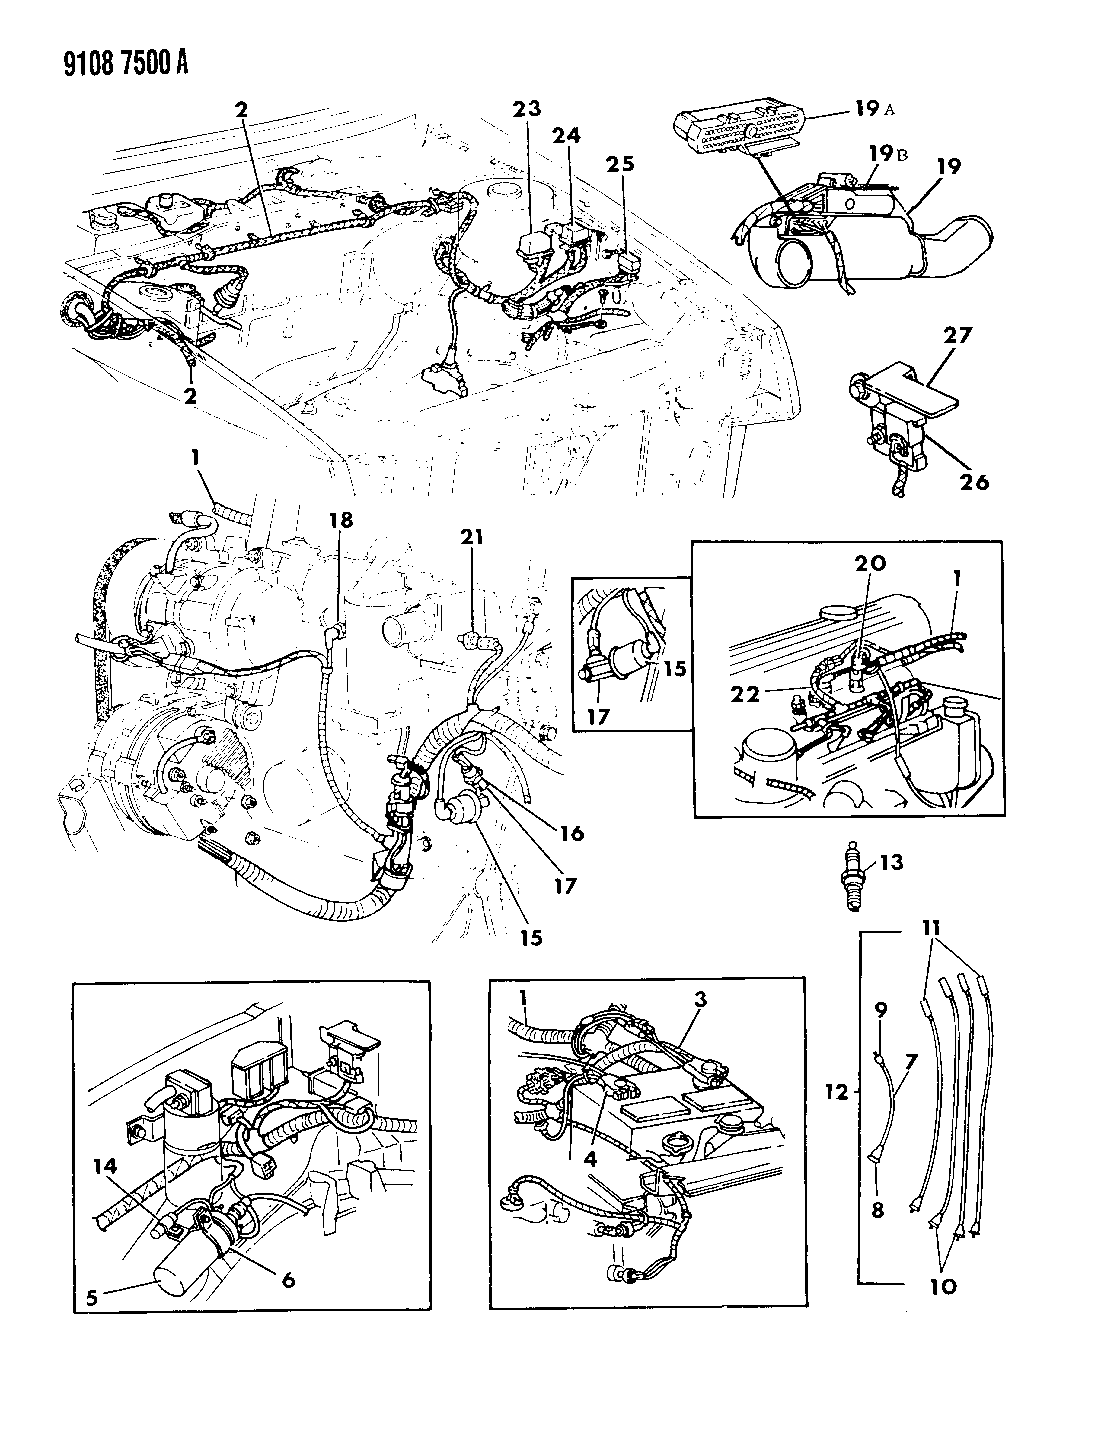 1989 Dodge Daytona Wiring - Engine